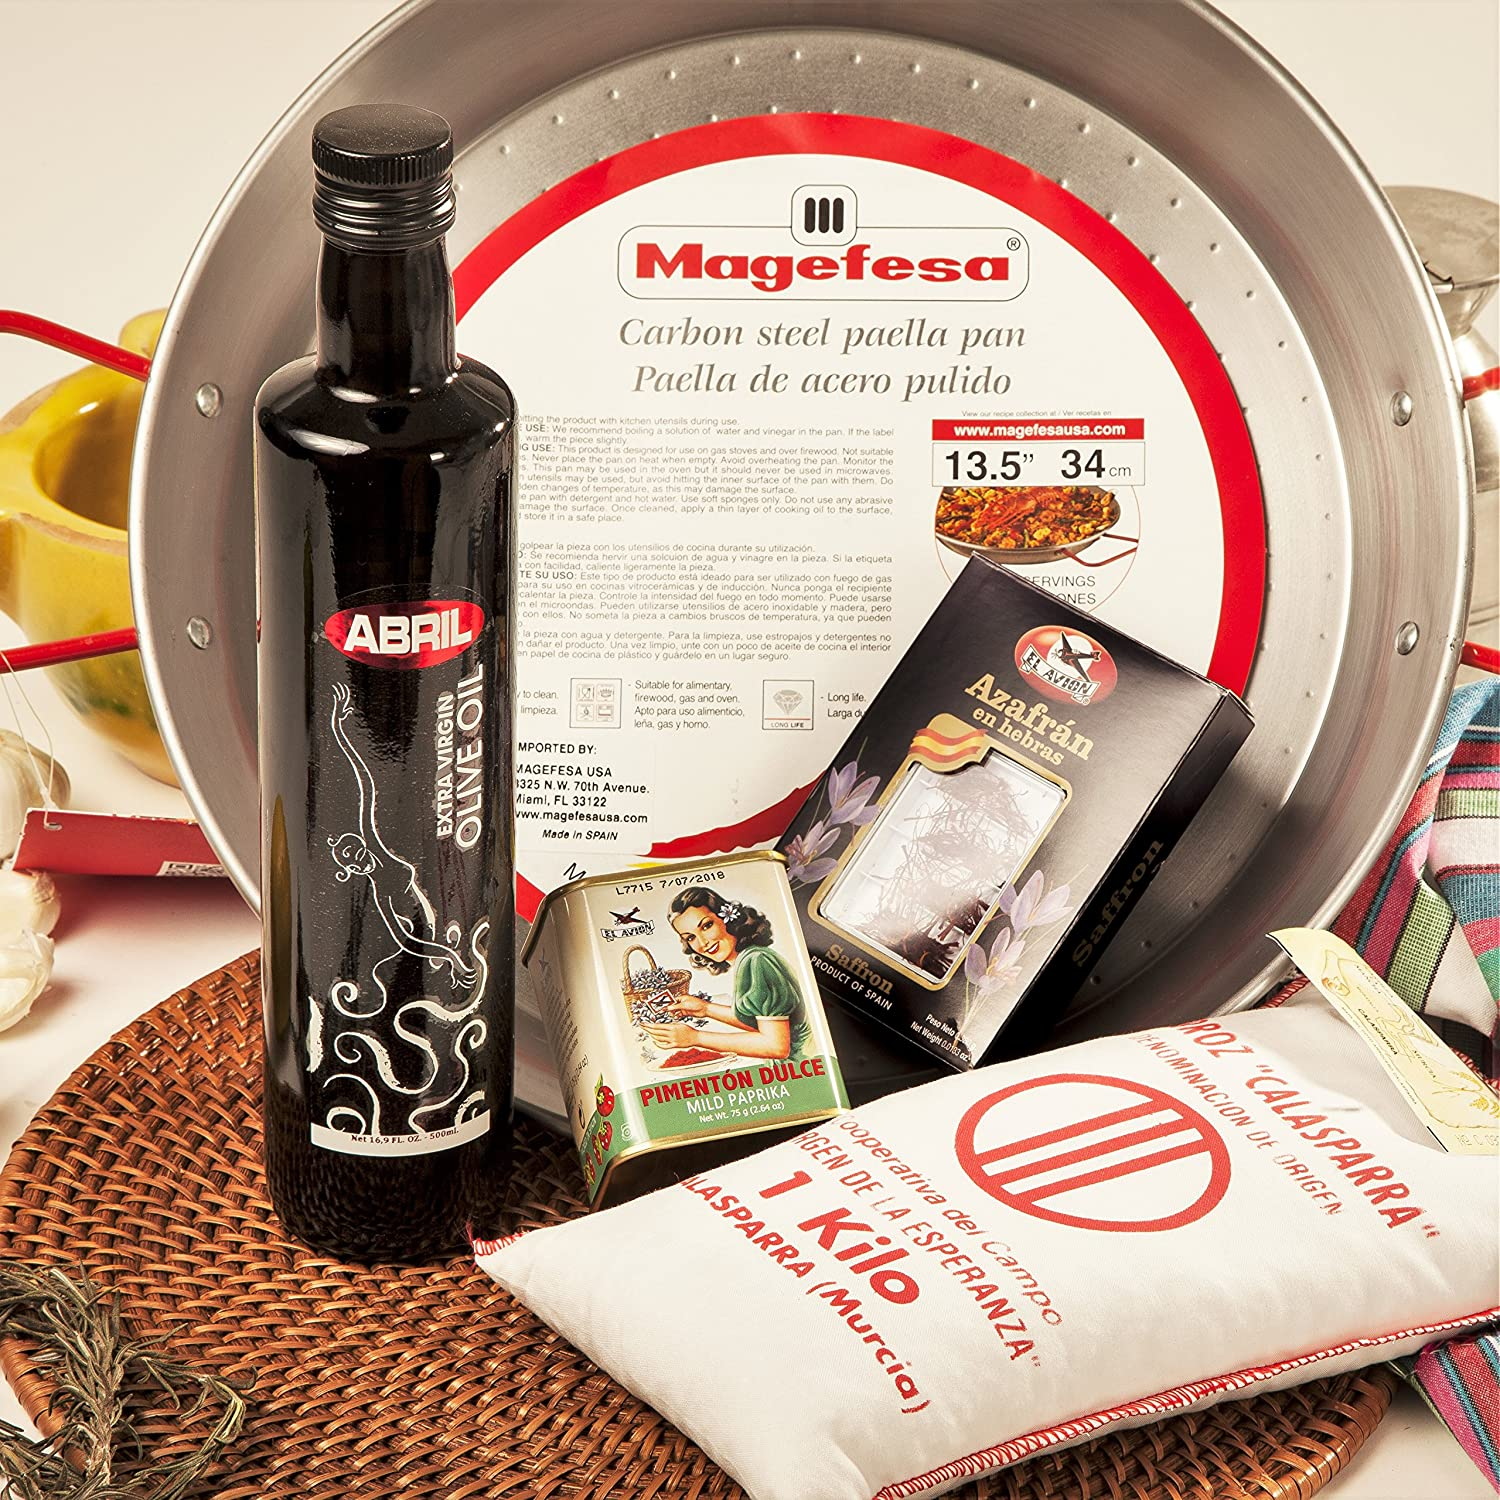 Carmen Lola Bombing new work Standard Paella Kit Free shipping anywhere in the nation